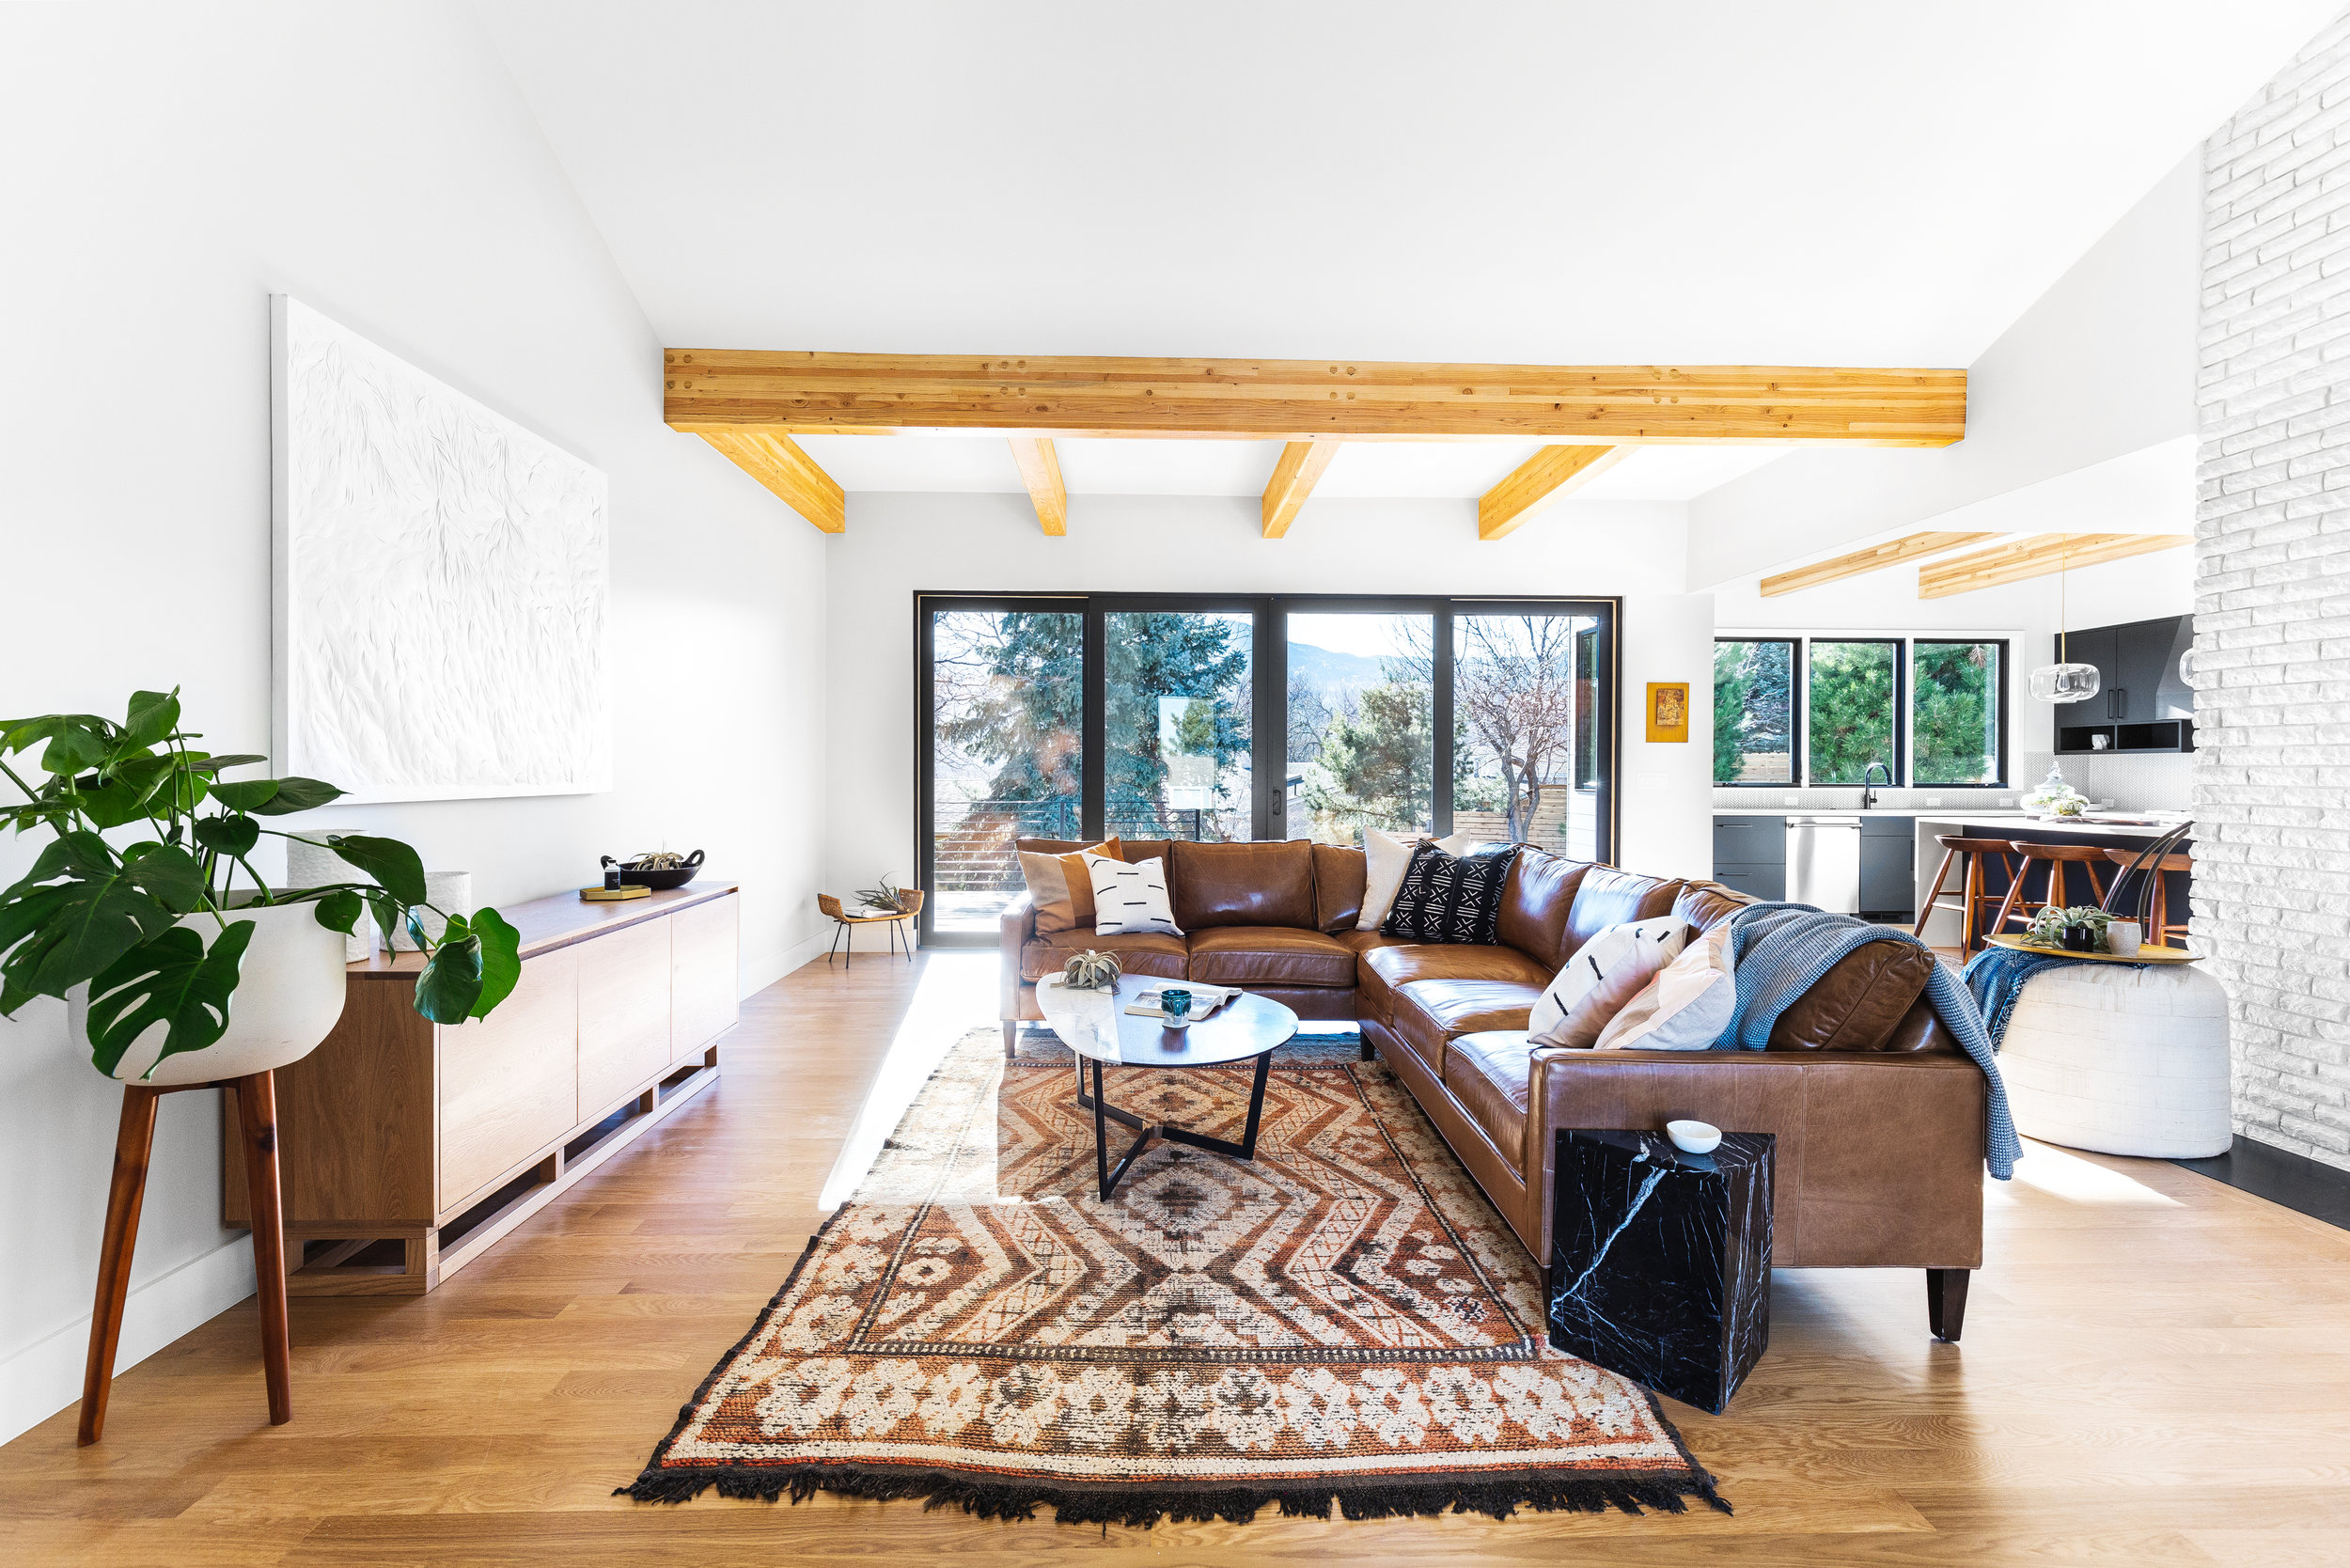 2550 Balsam Dr. - A 1970s bungalow remodeled into perfection in Boulder. Listed by Zach Zeldner, Compass.4 Bed, 3 BathFor sale at $2.78 million